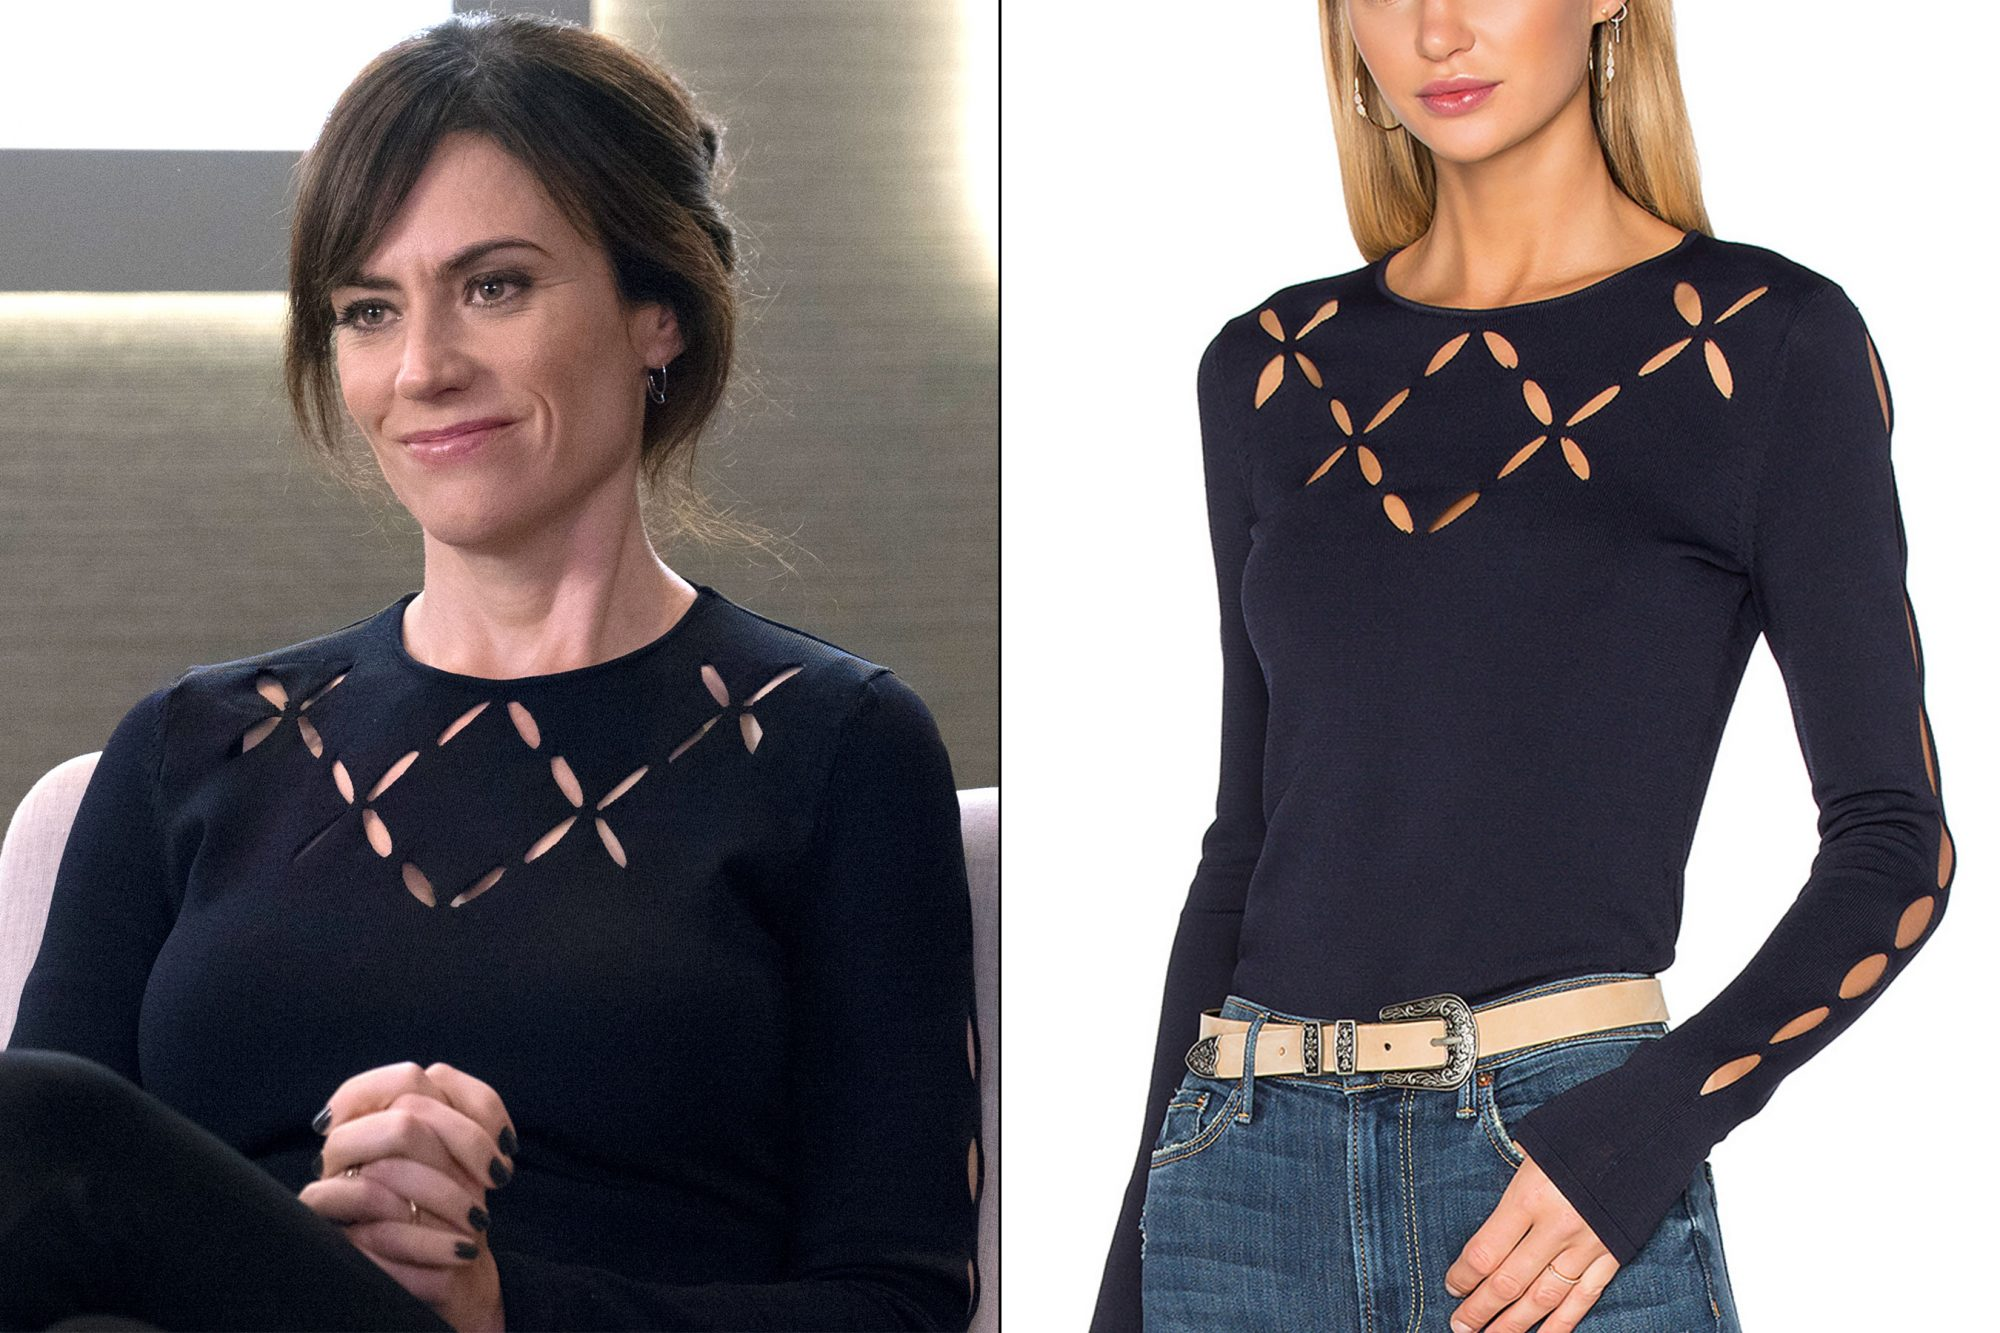 Wendy Rhoades' (Maggie Siff) cutout sweater on Billions